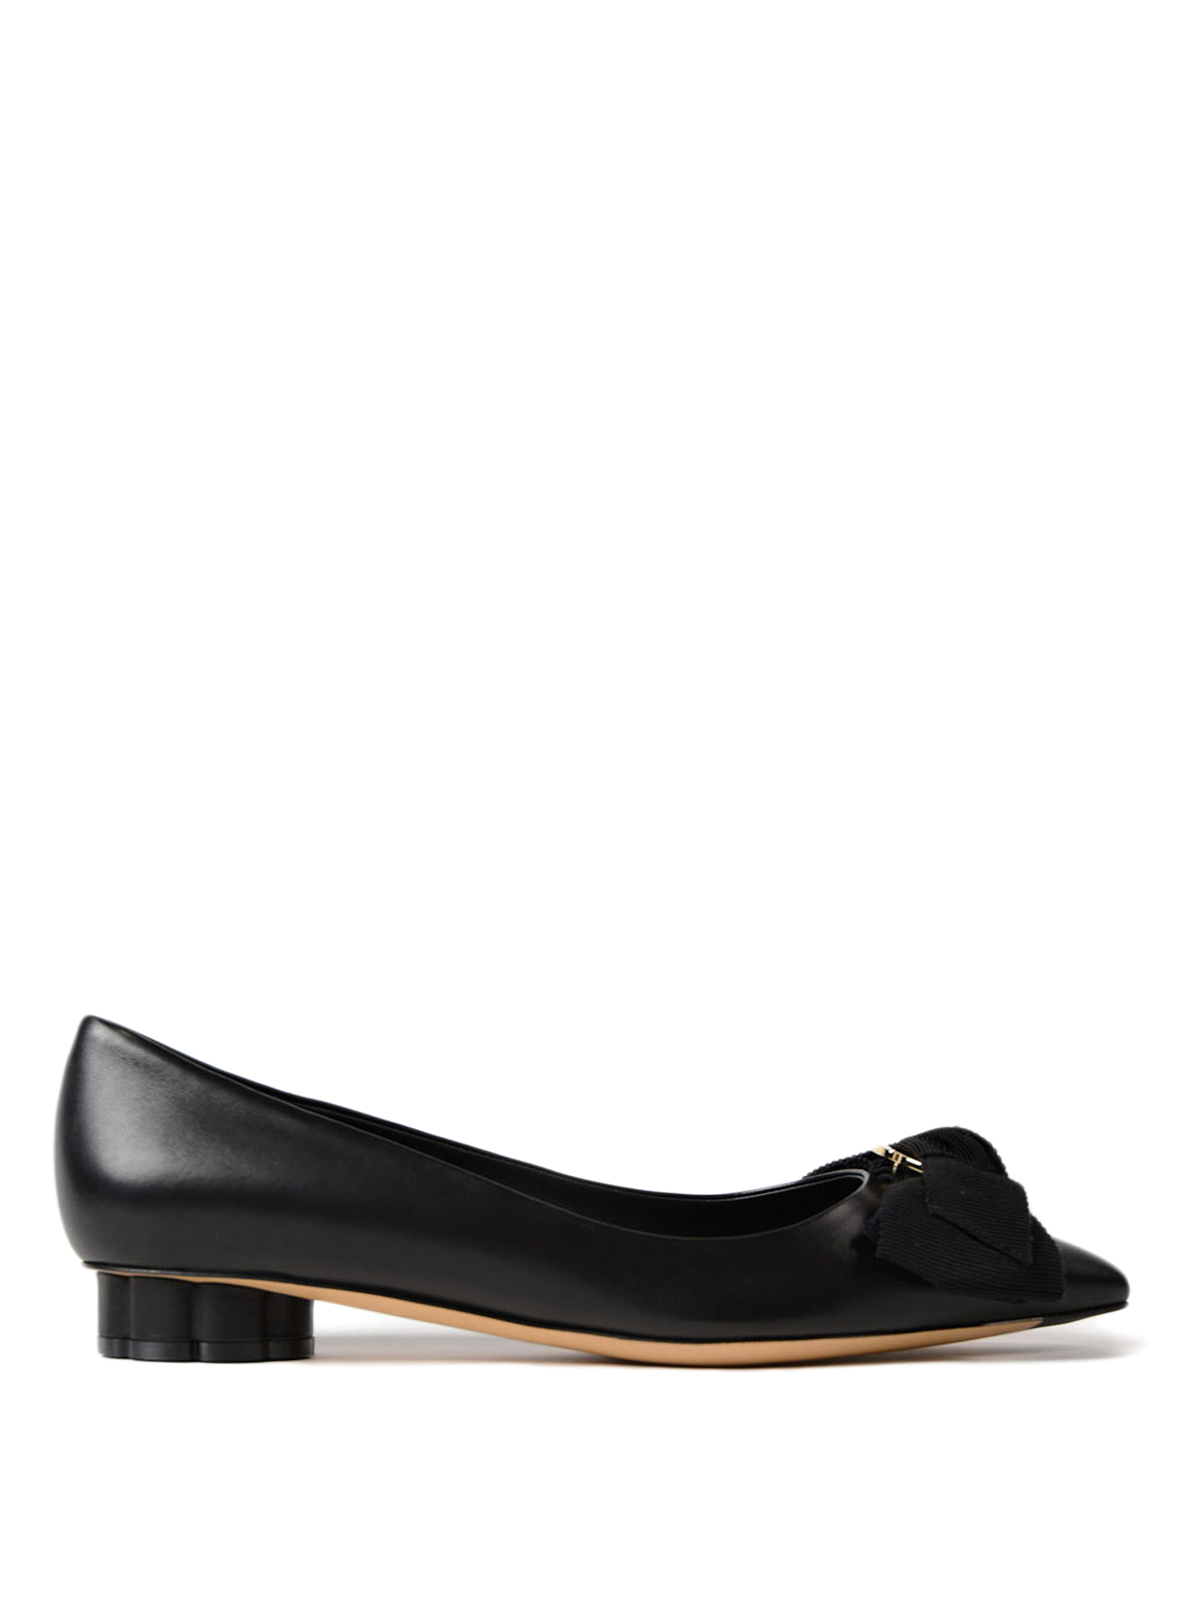 Salvatore Ferragamo Peony pumps factory outlet for sale discount looking for sale lowest price 7z14js8M